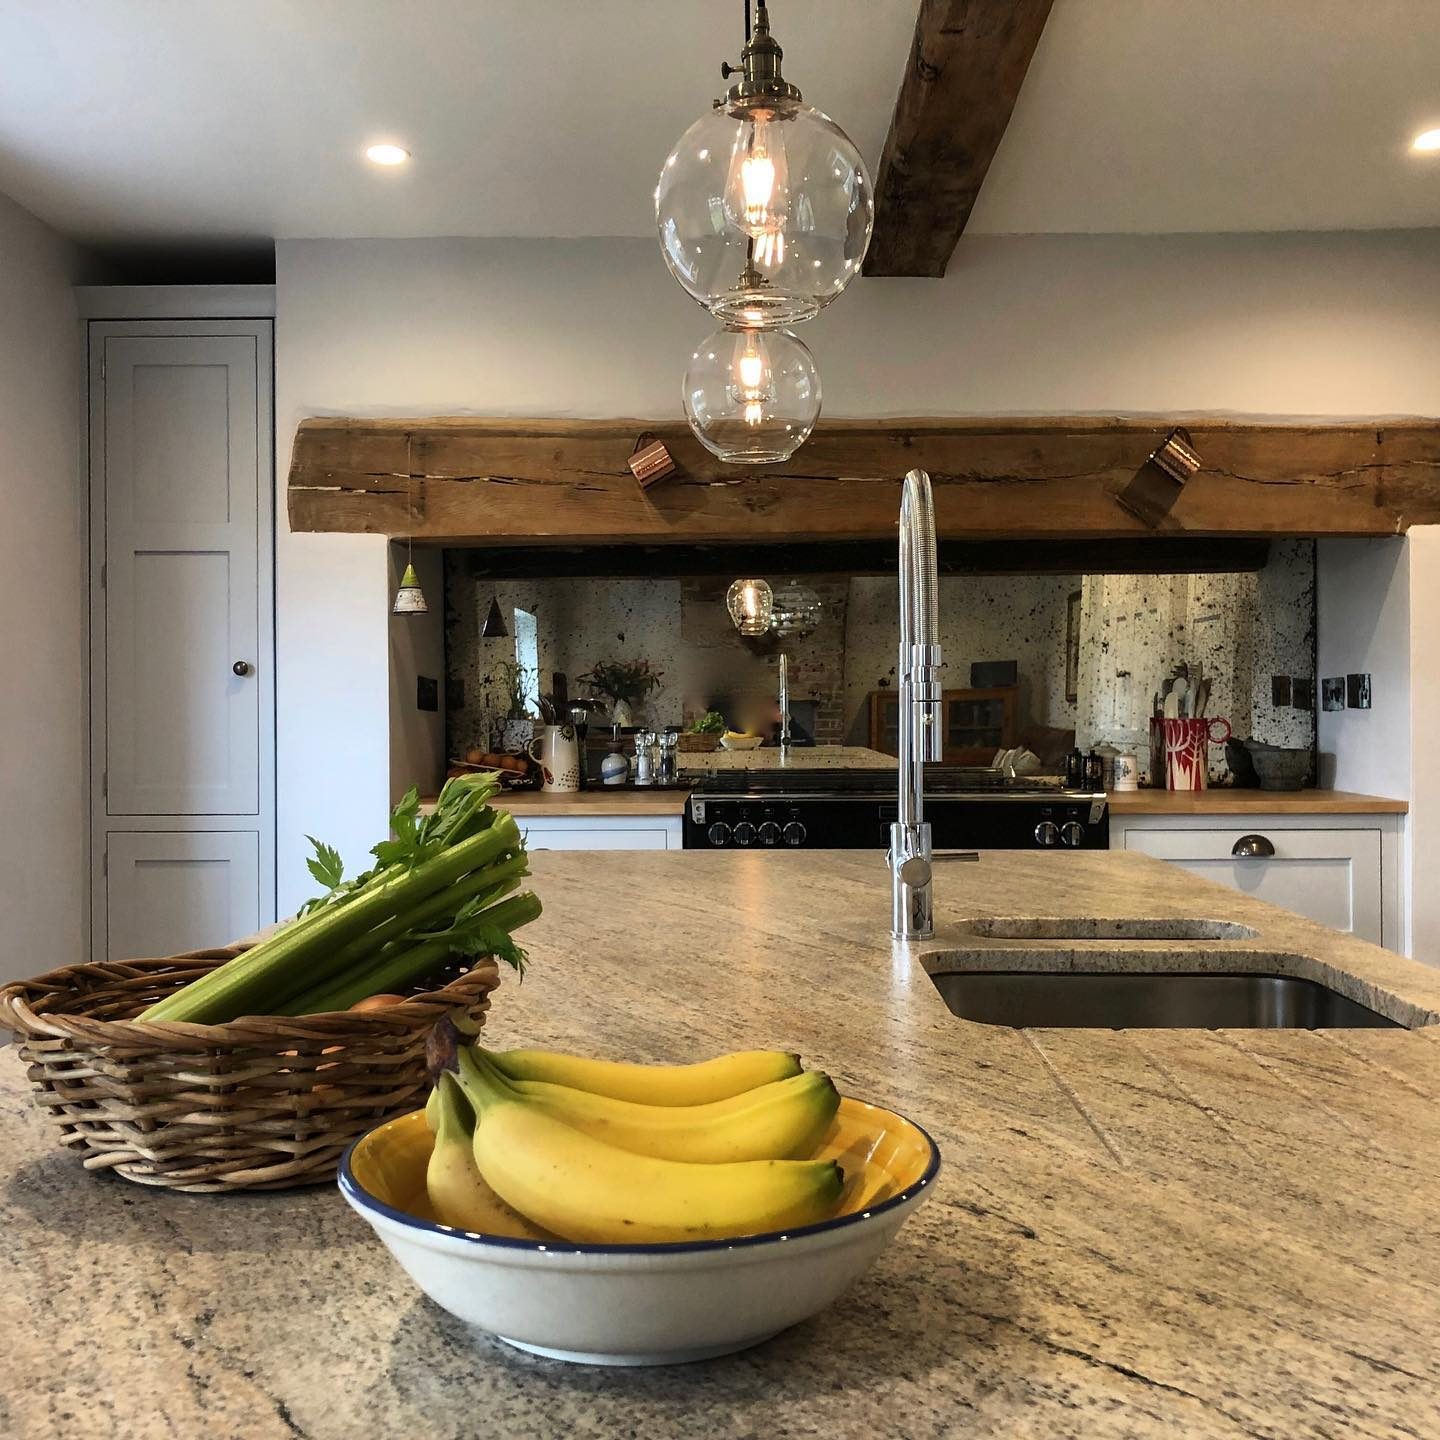 Stunning-Ivory-Fantasy-Granite-Worktops-in-30mm-perfectly-complement-this